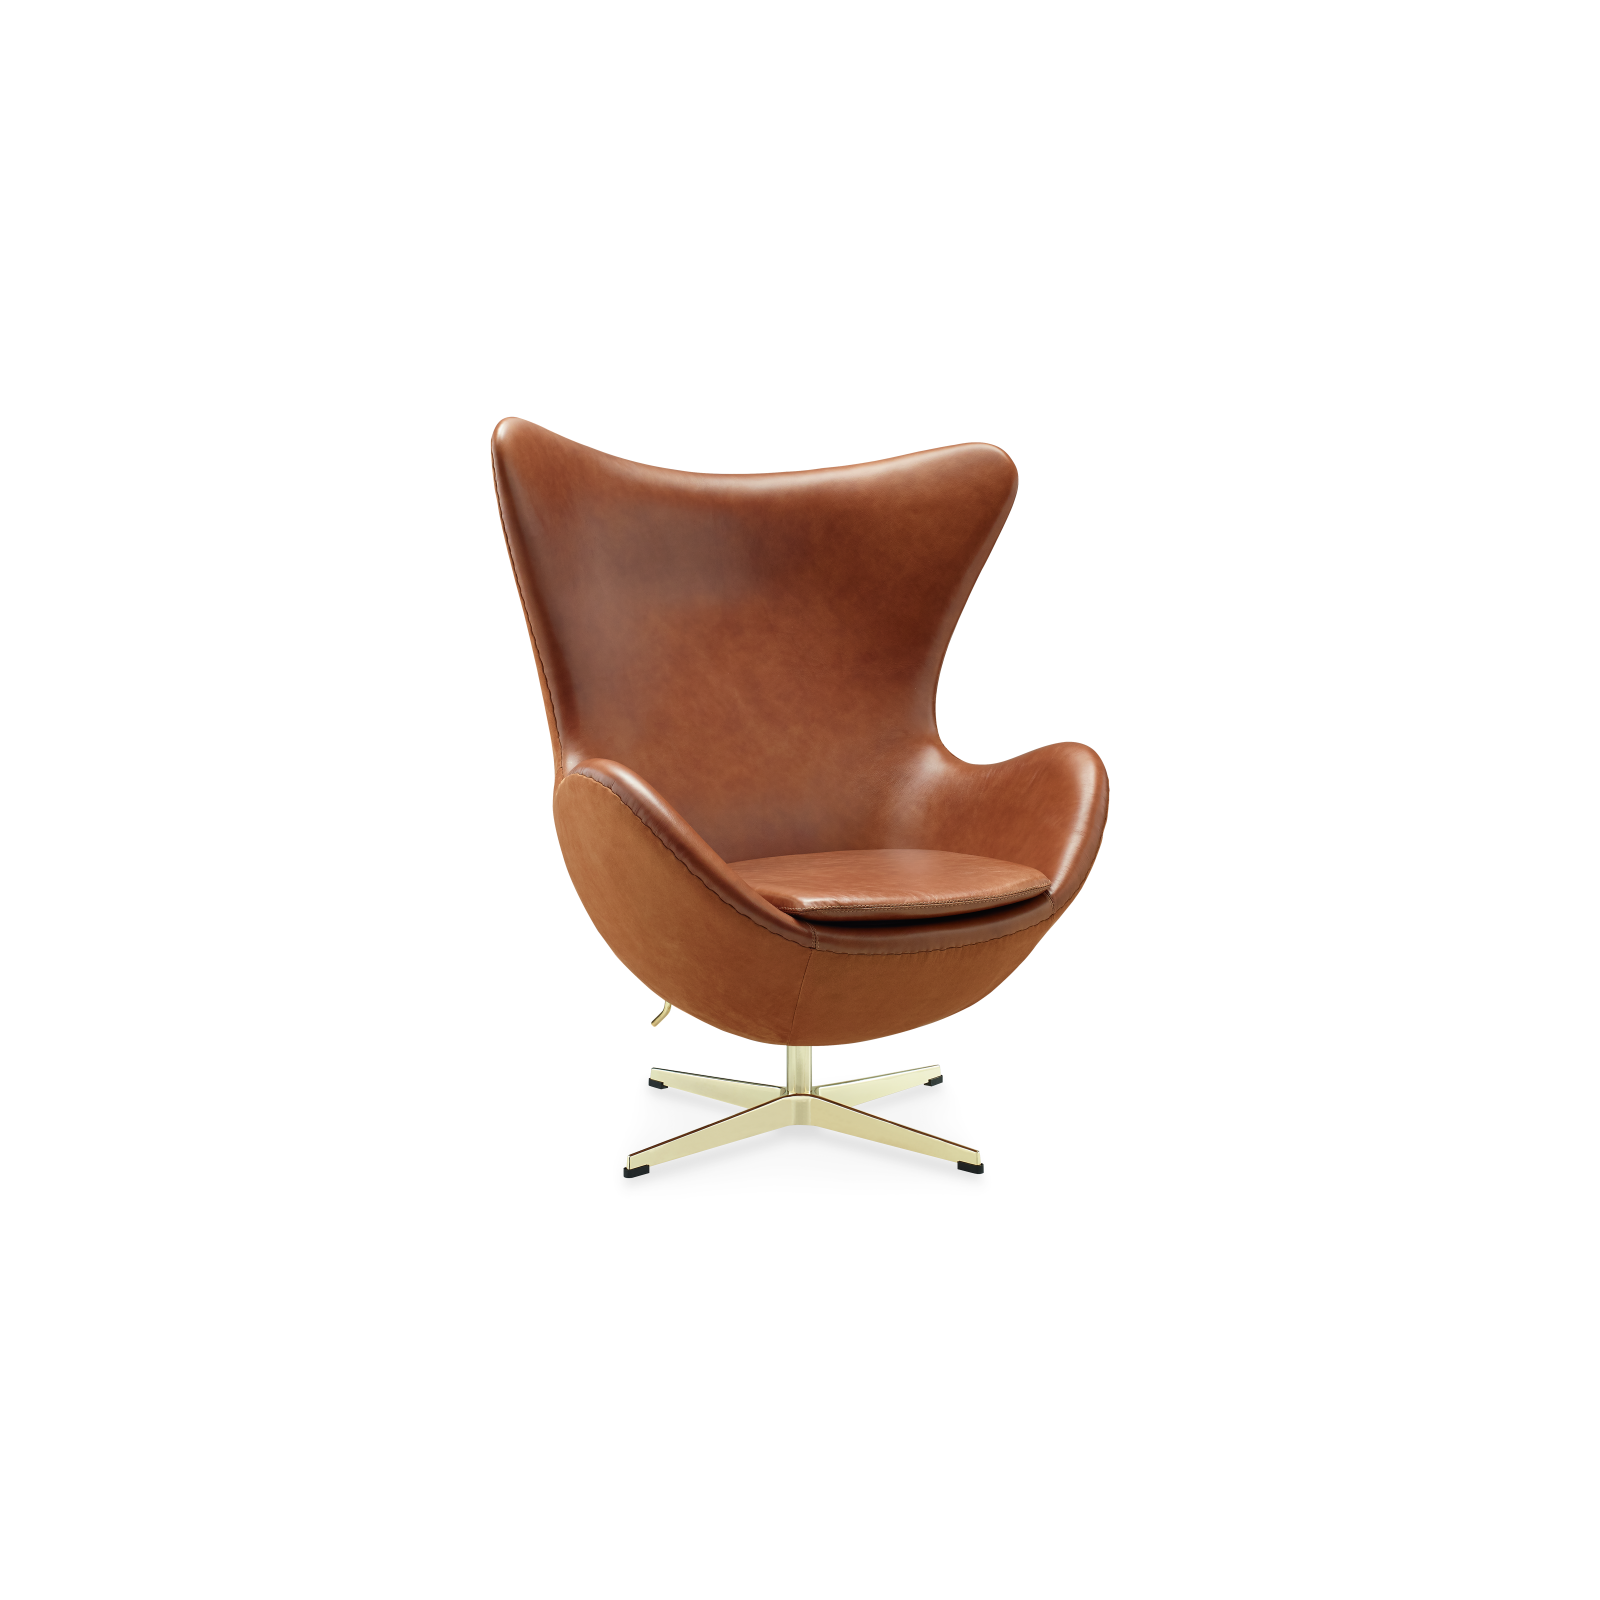 Eames Stühle Replica Egg Chair Replica Grau Lounge Chairs 2019 02 20